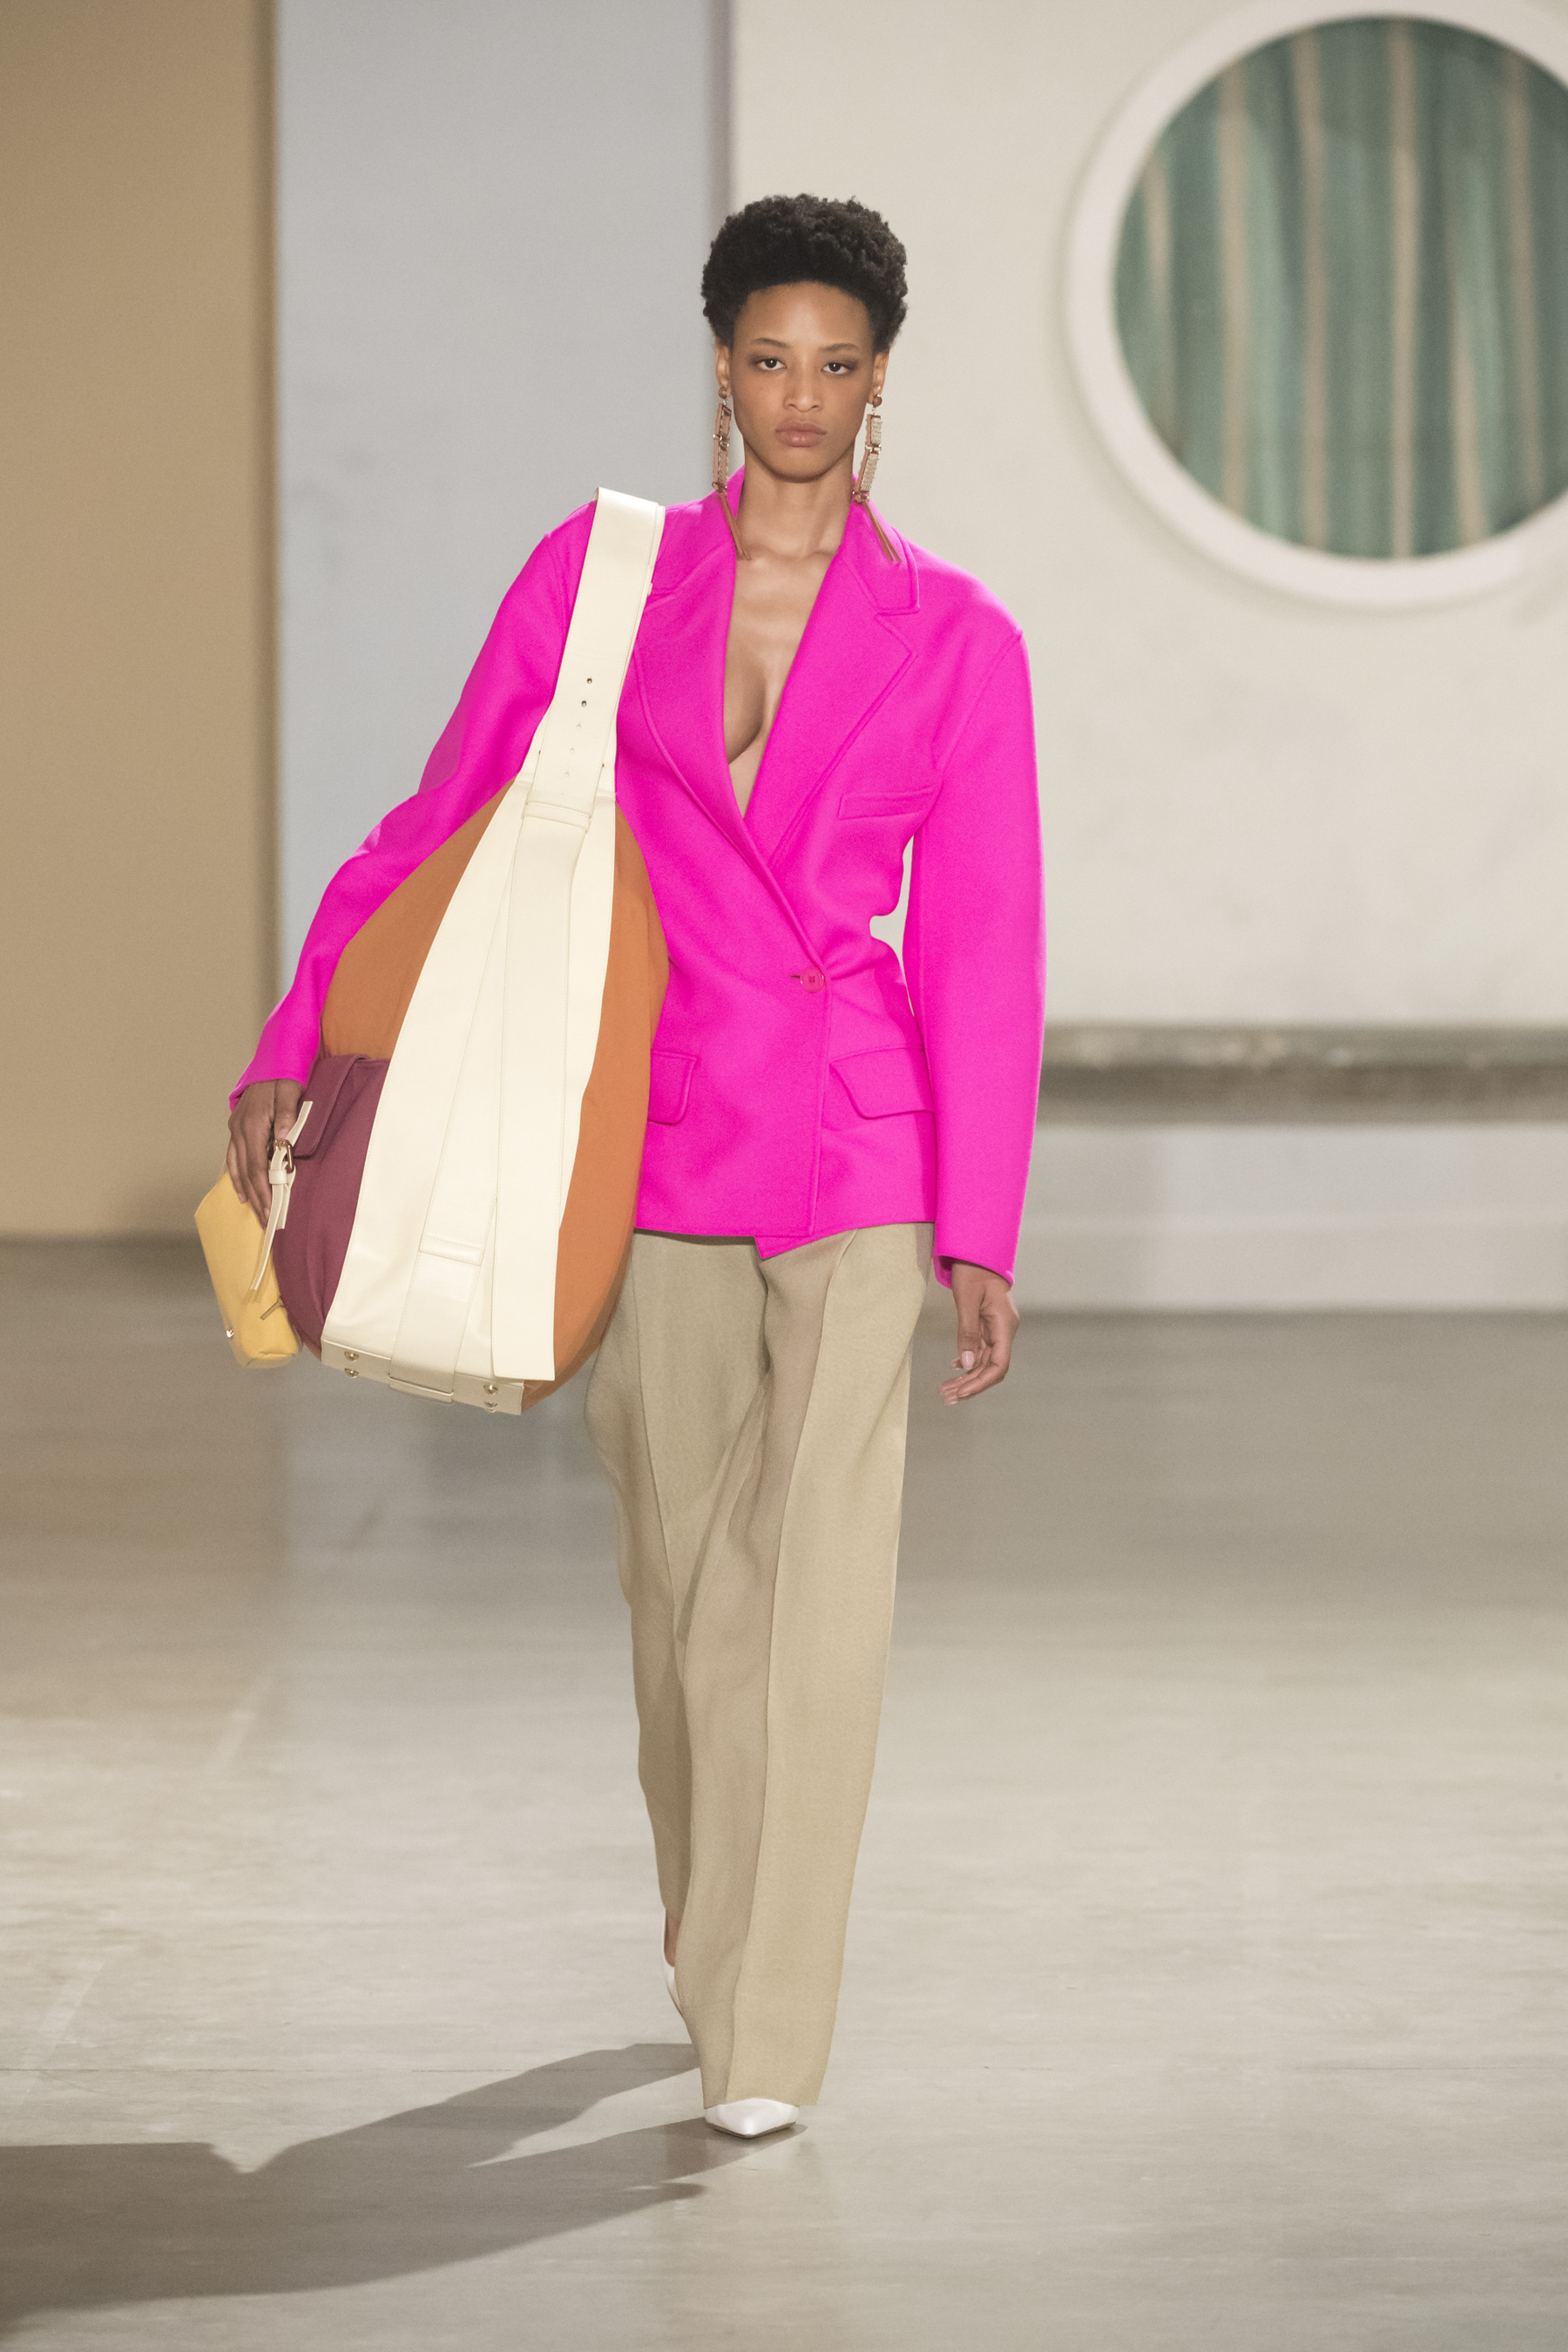 Jacquemus Fall 2019 Fashion Show